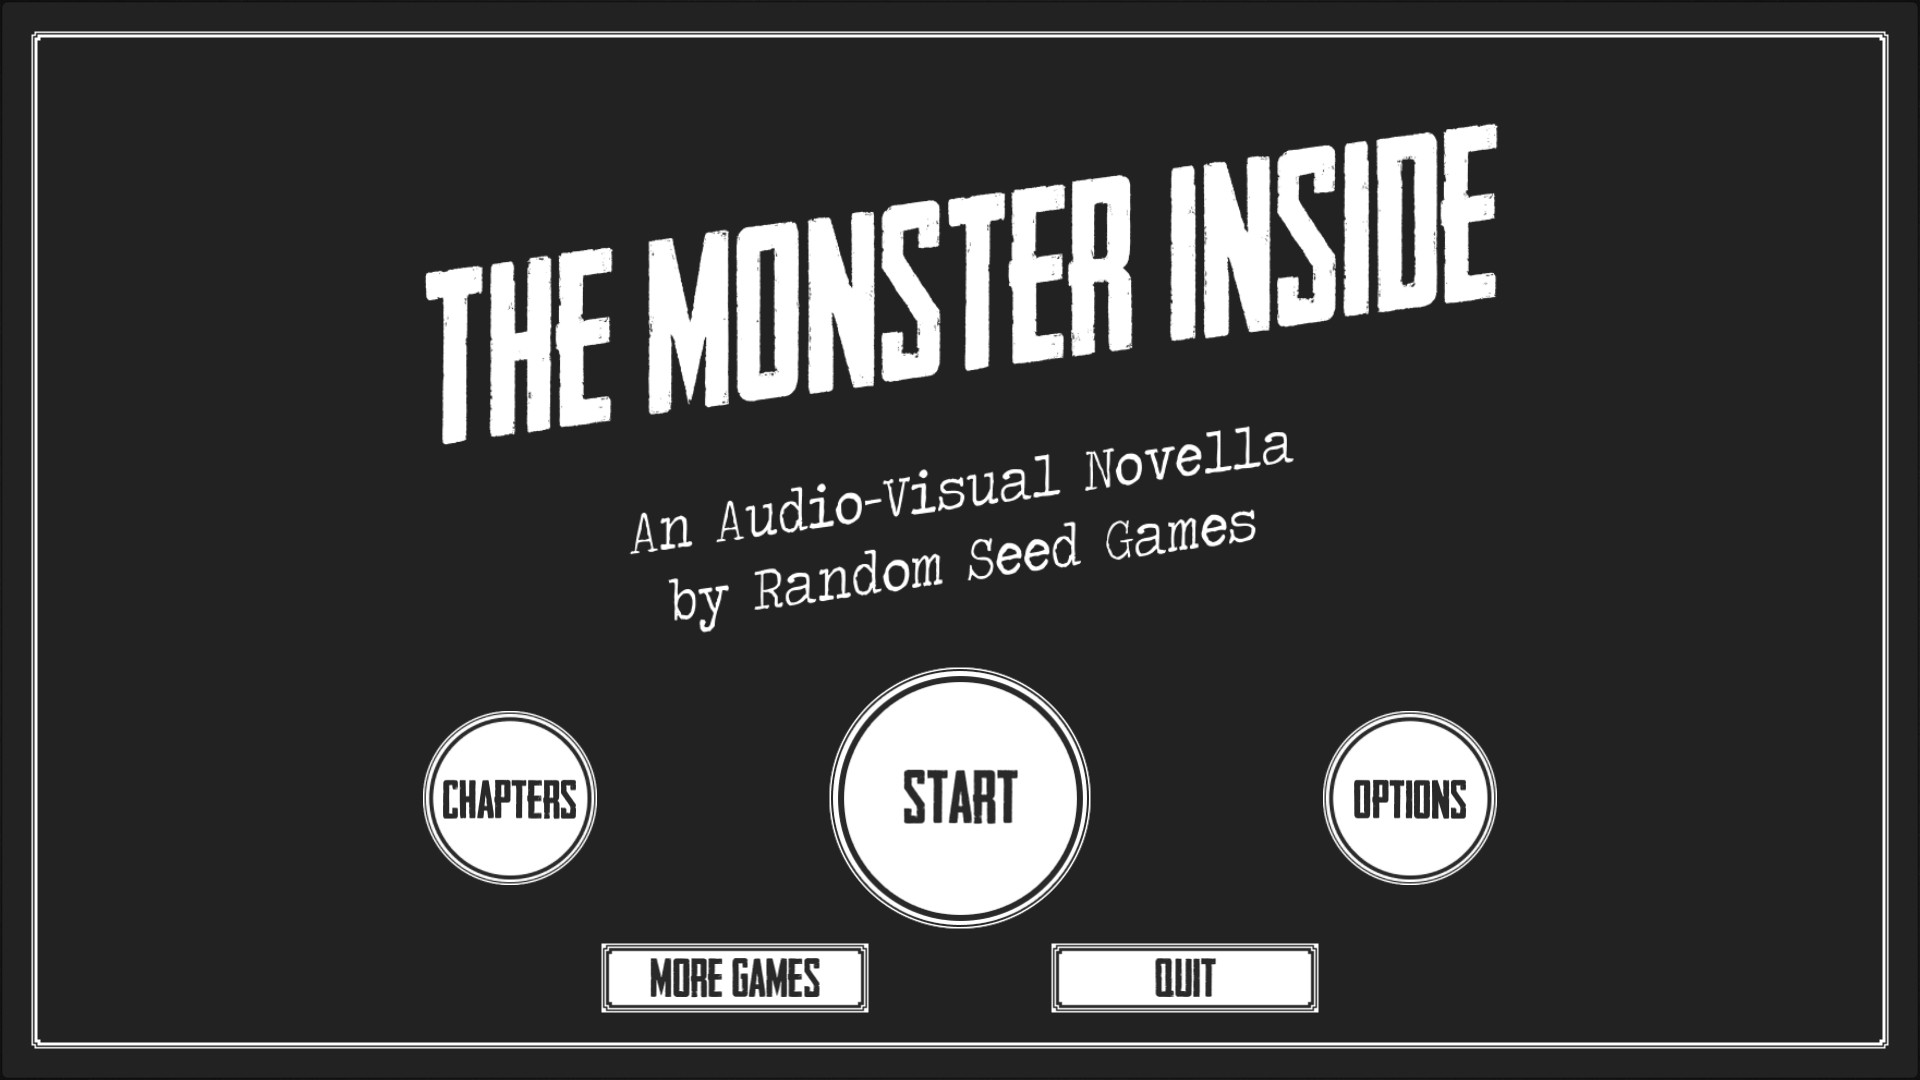 The Monster Inside on Steam